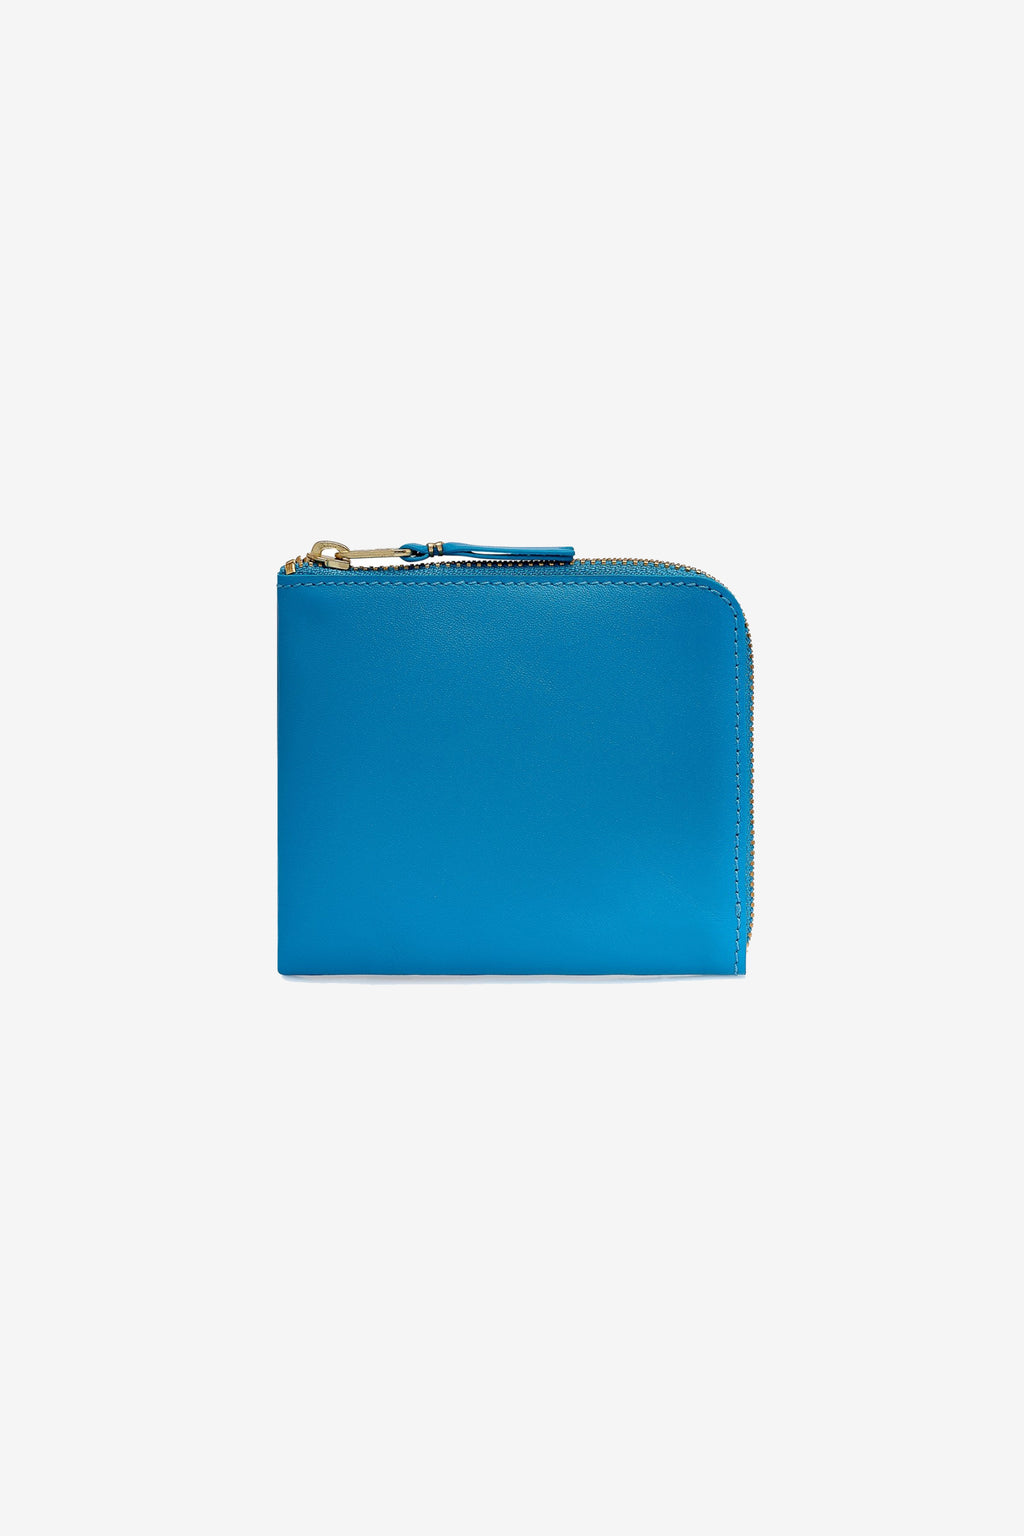 Comme Des Garcons Wallet Classic Leather Blue SA3100